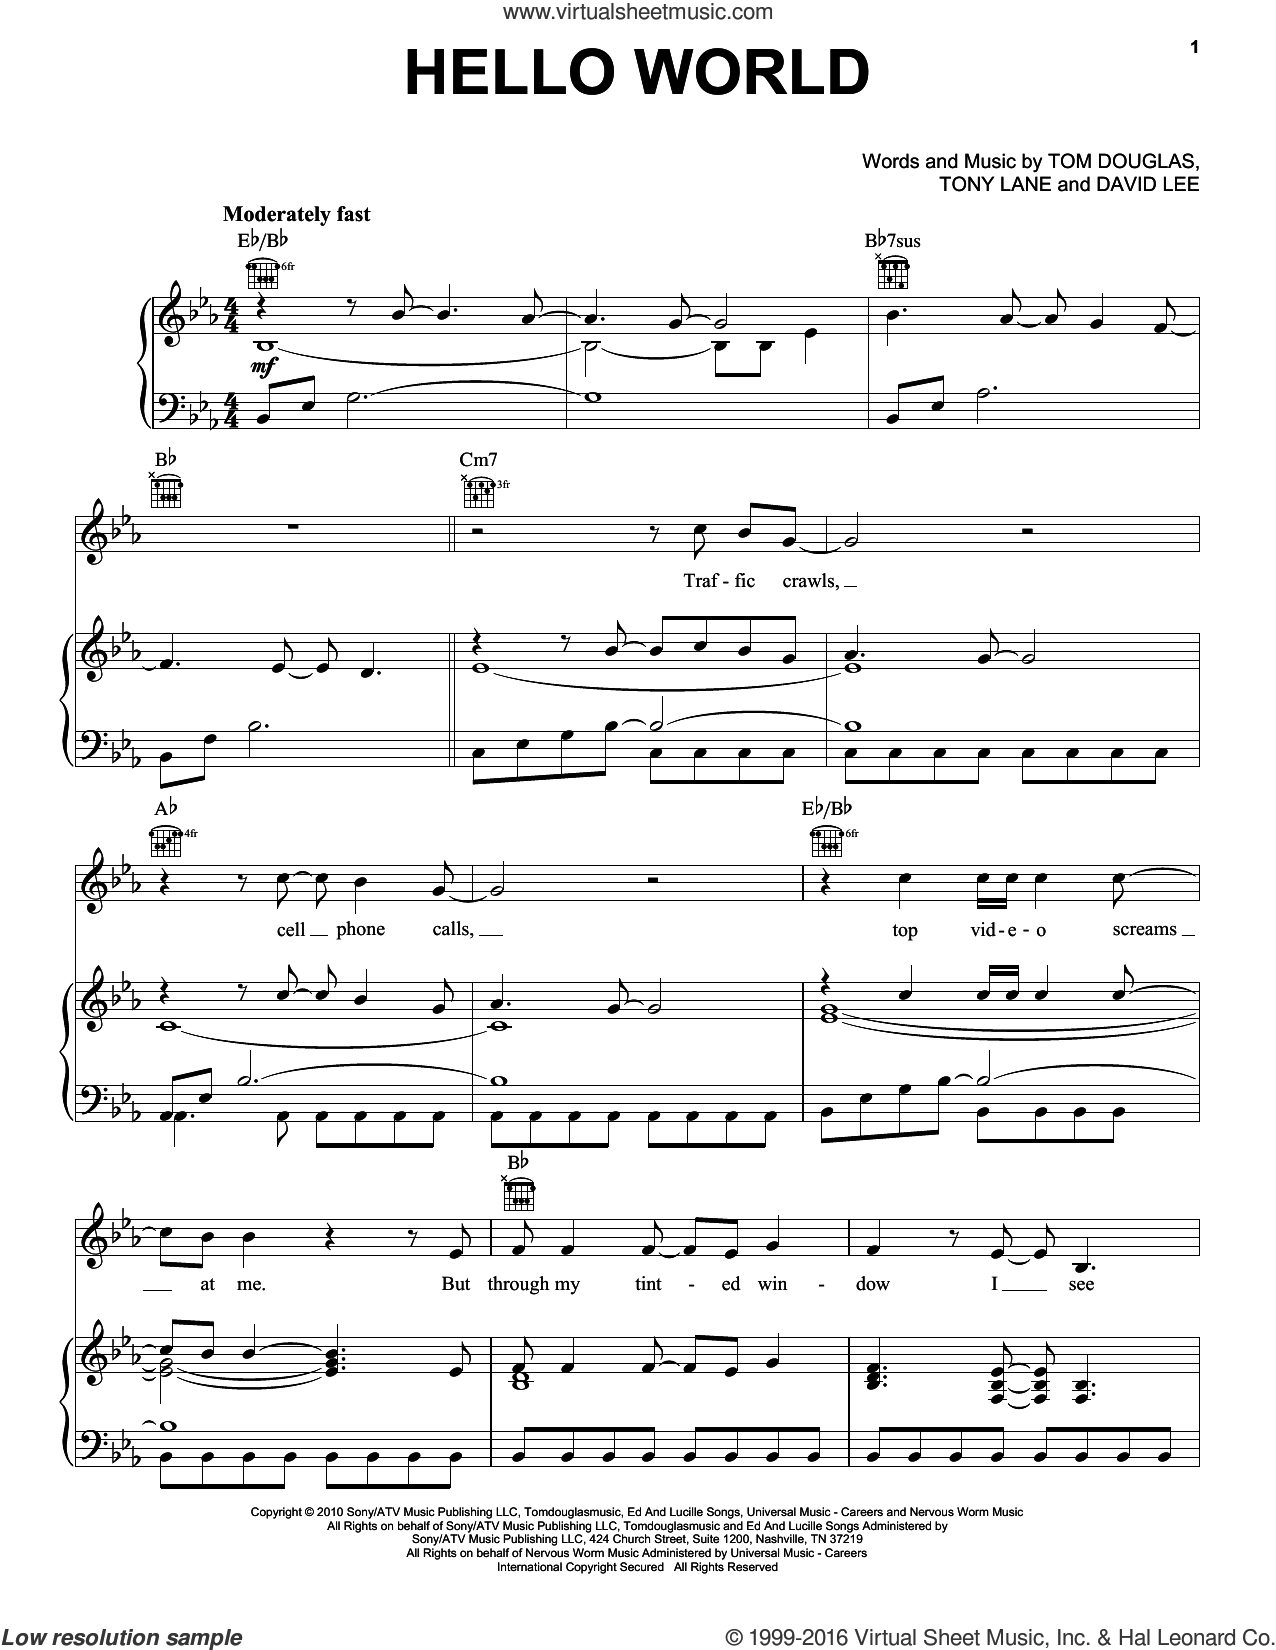 Hello World sheet music for voice, piano or guitar by Lady A, Lady Antebellum, David Lee, Tom Douglas and Tony Lane, intermediate skill level